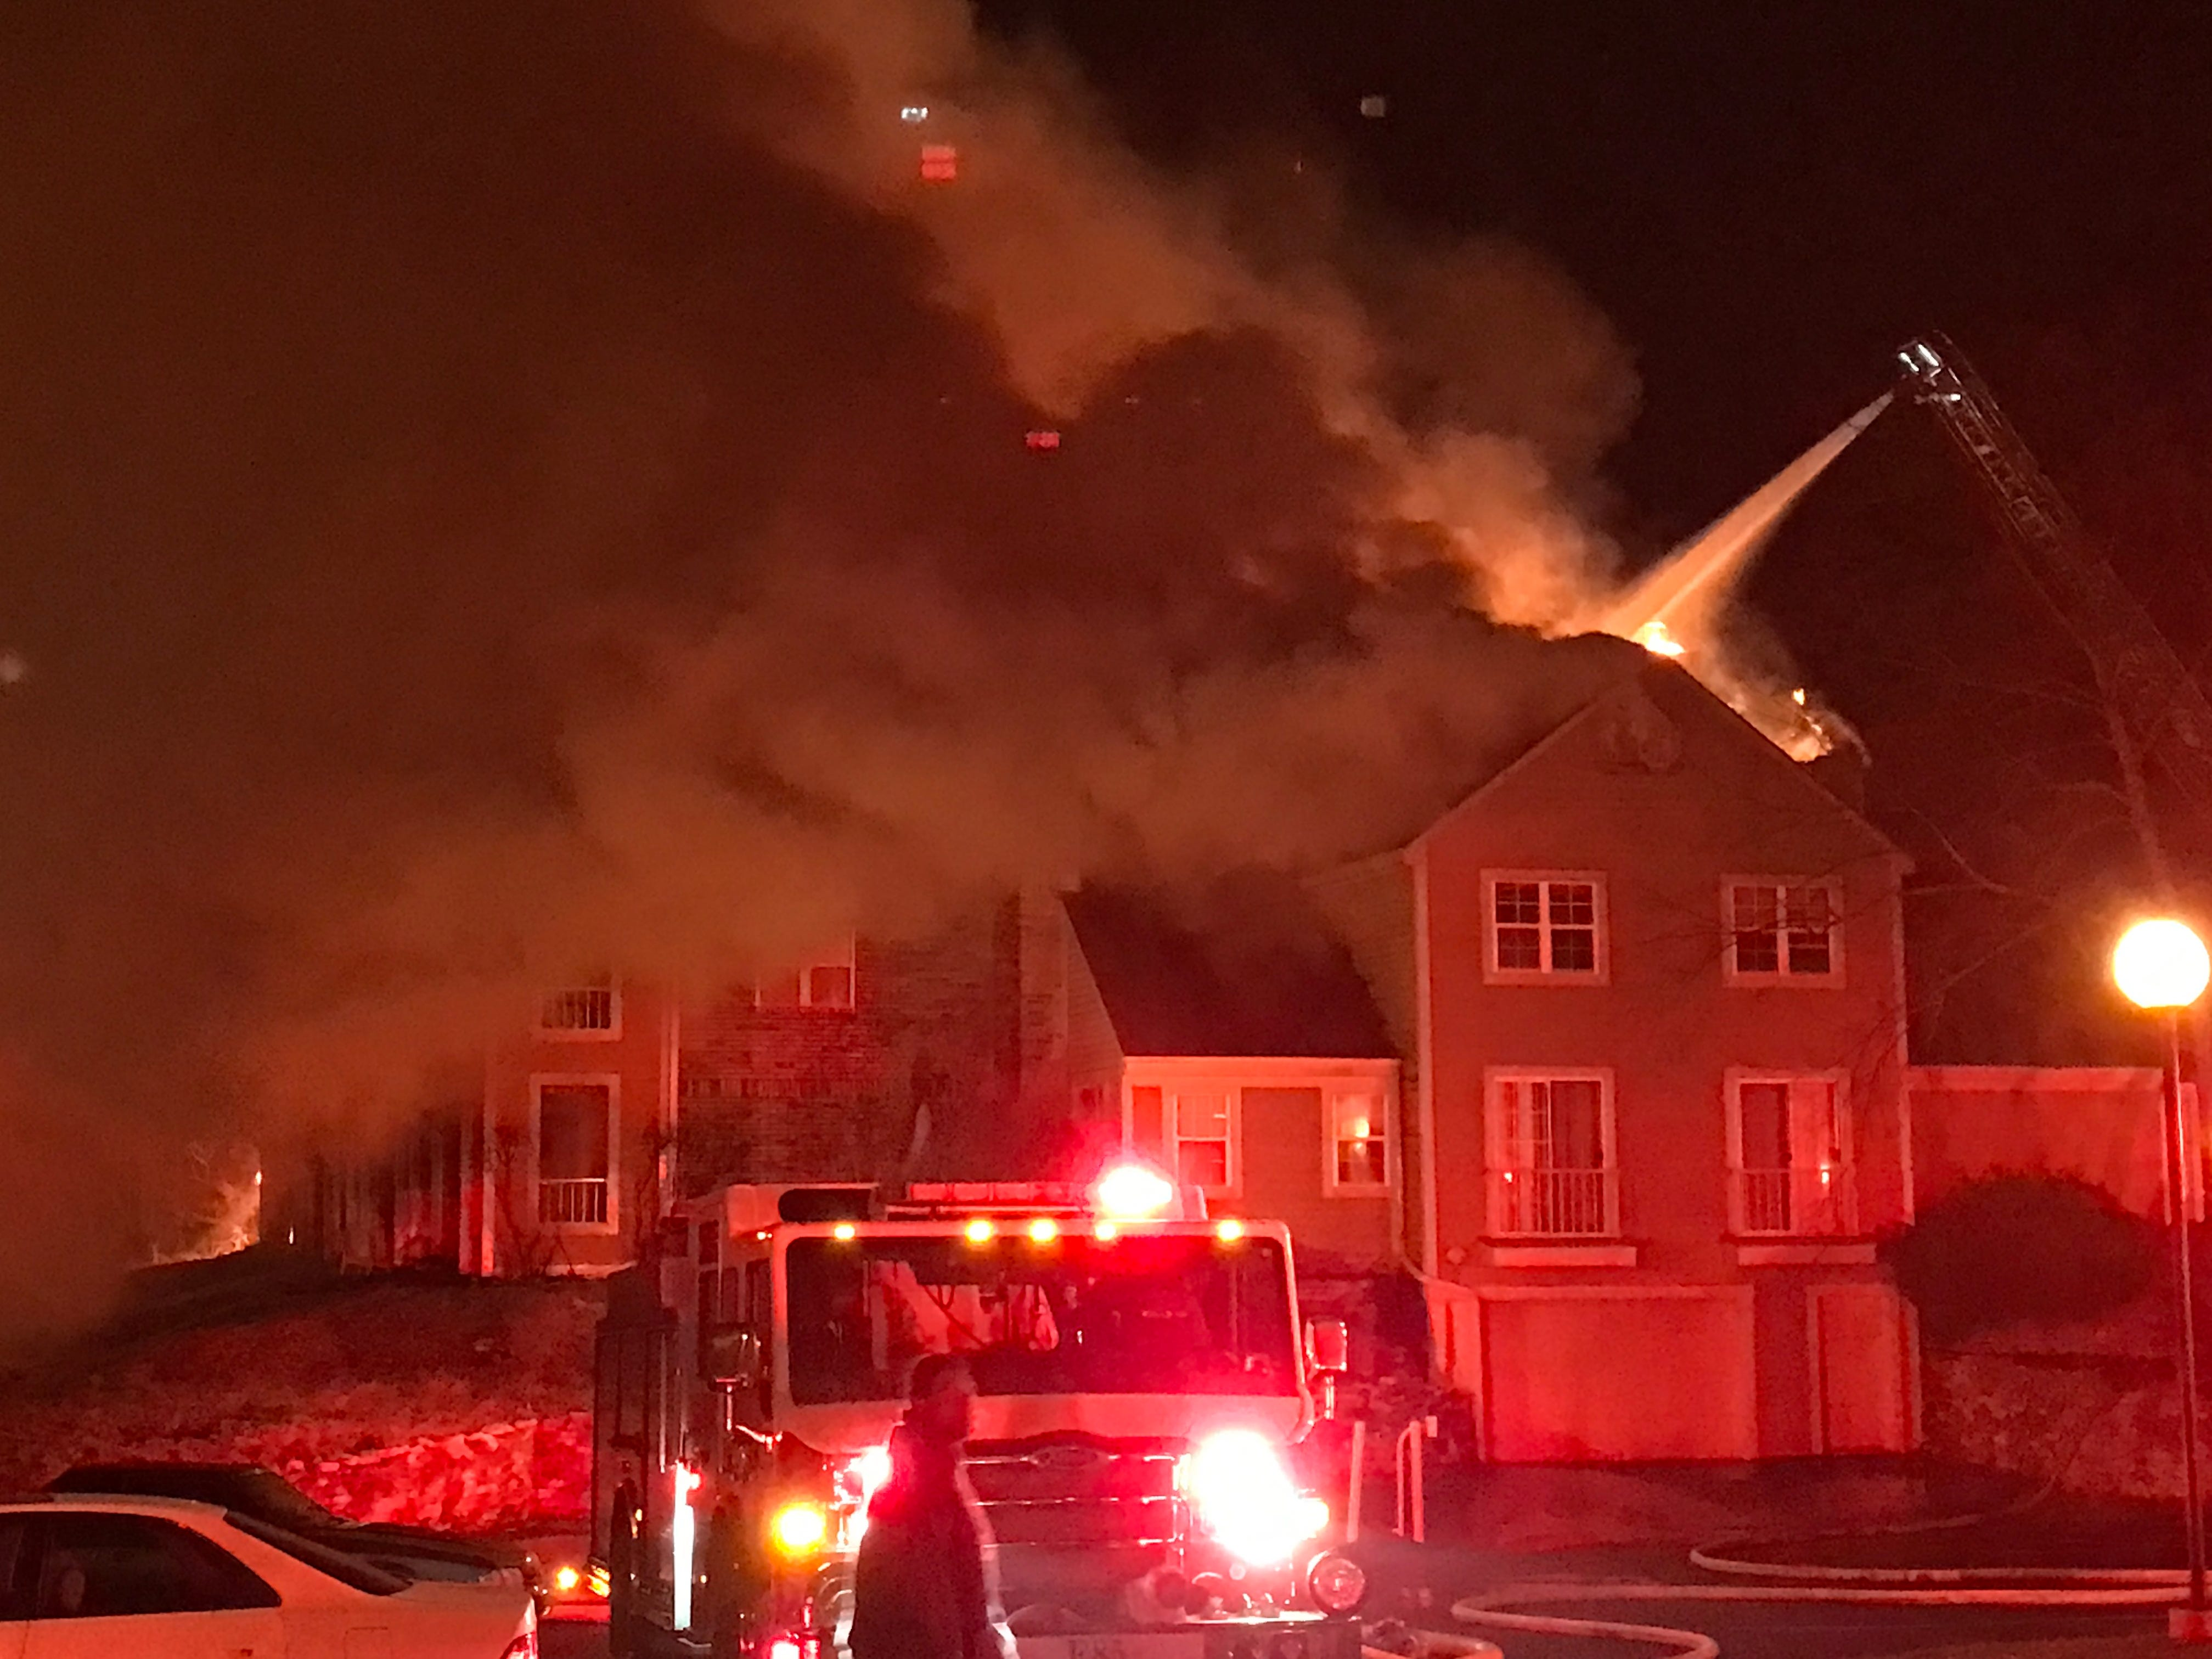 The North Shore Fire Department in a Facebook post said numerous rescues were made from the burning building.